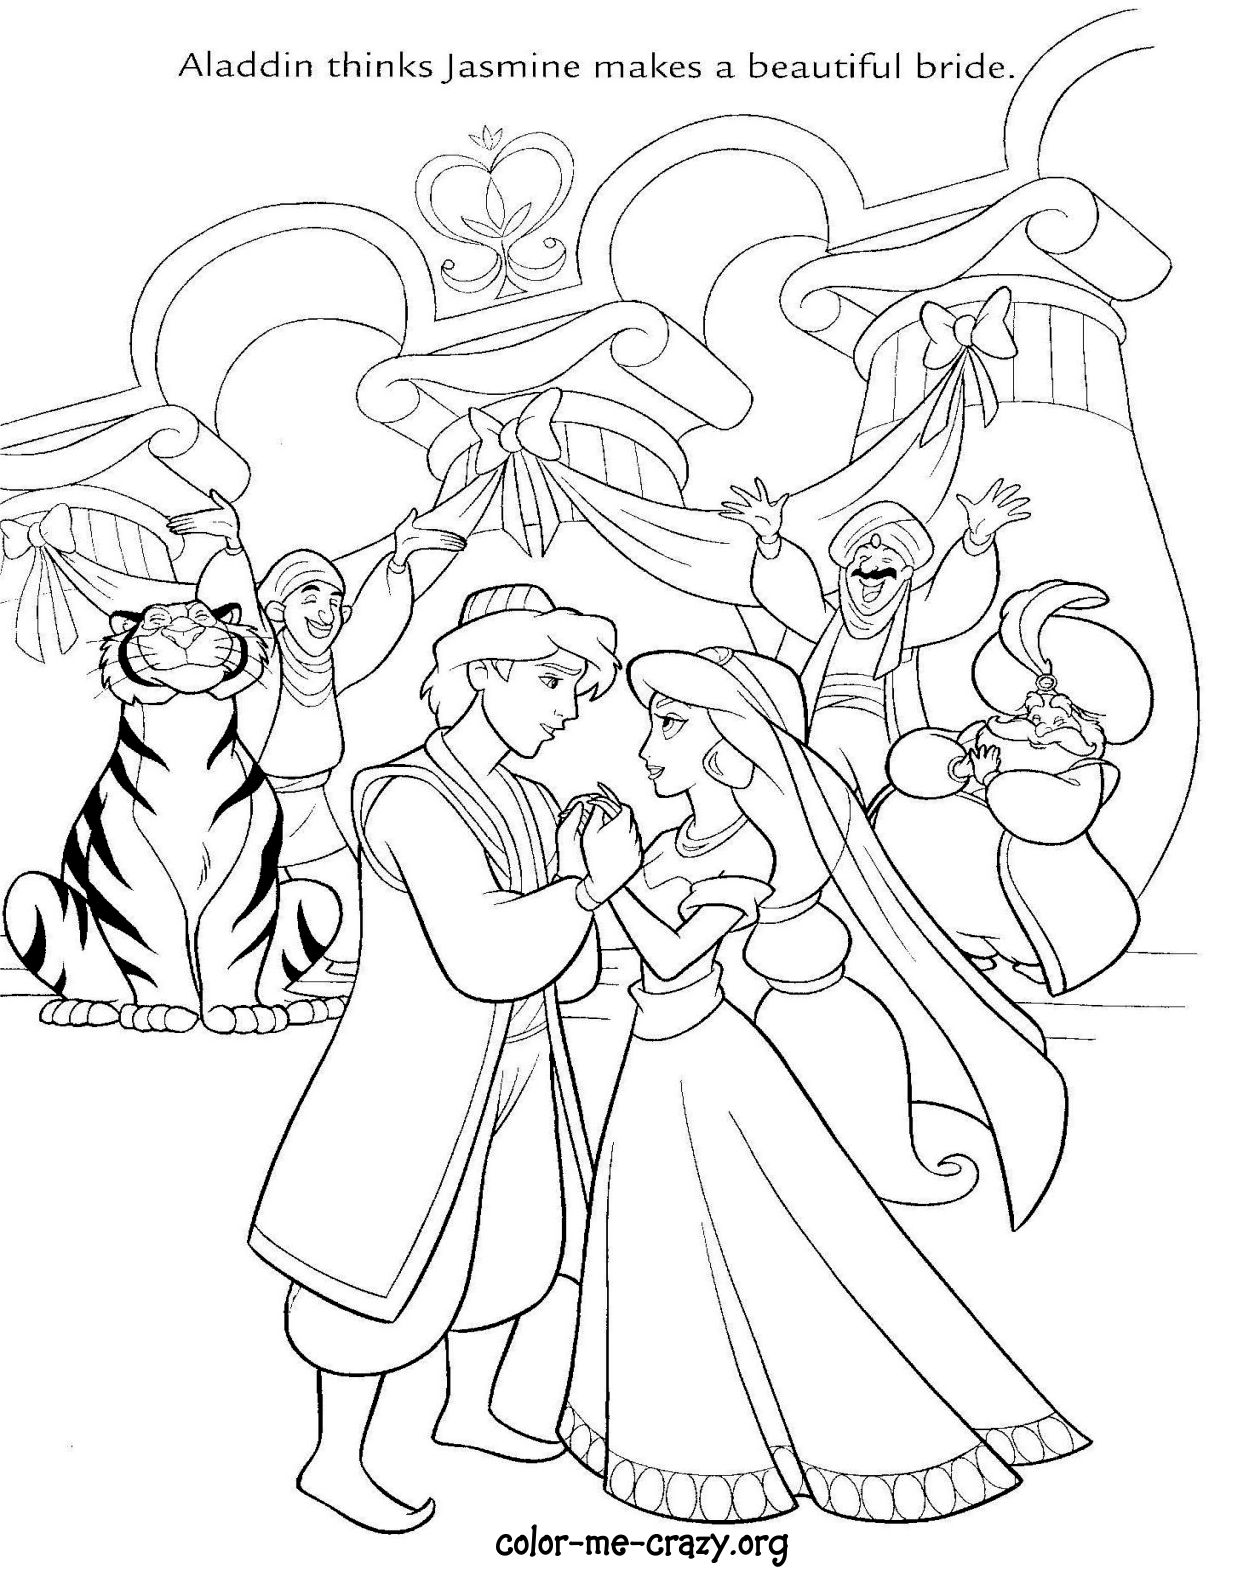 free personalized wedding coloring pages personalized printable bride groom wedding by sugarpiestudio free personalized pages coloring wedding